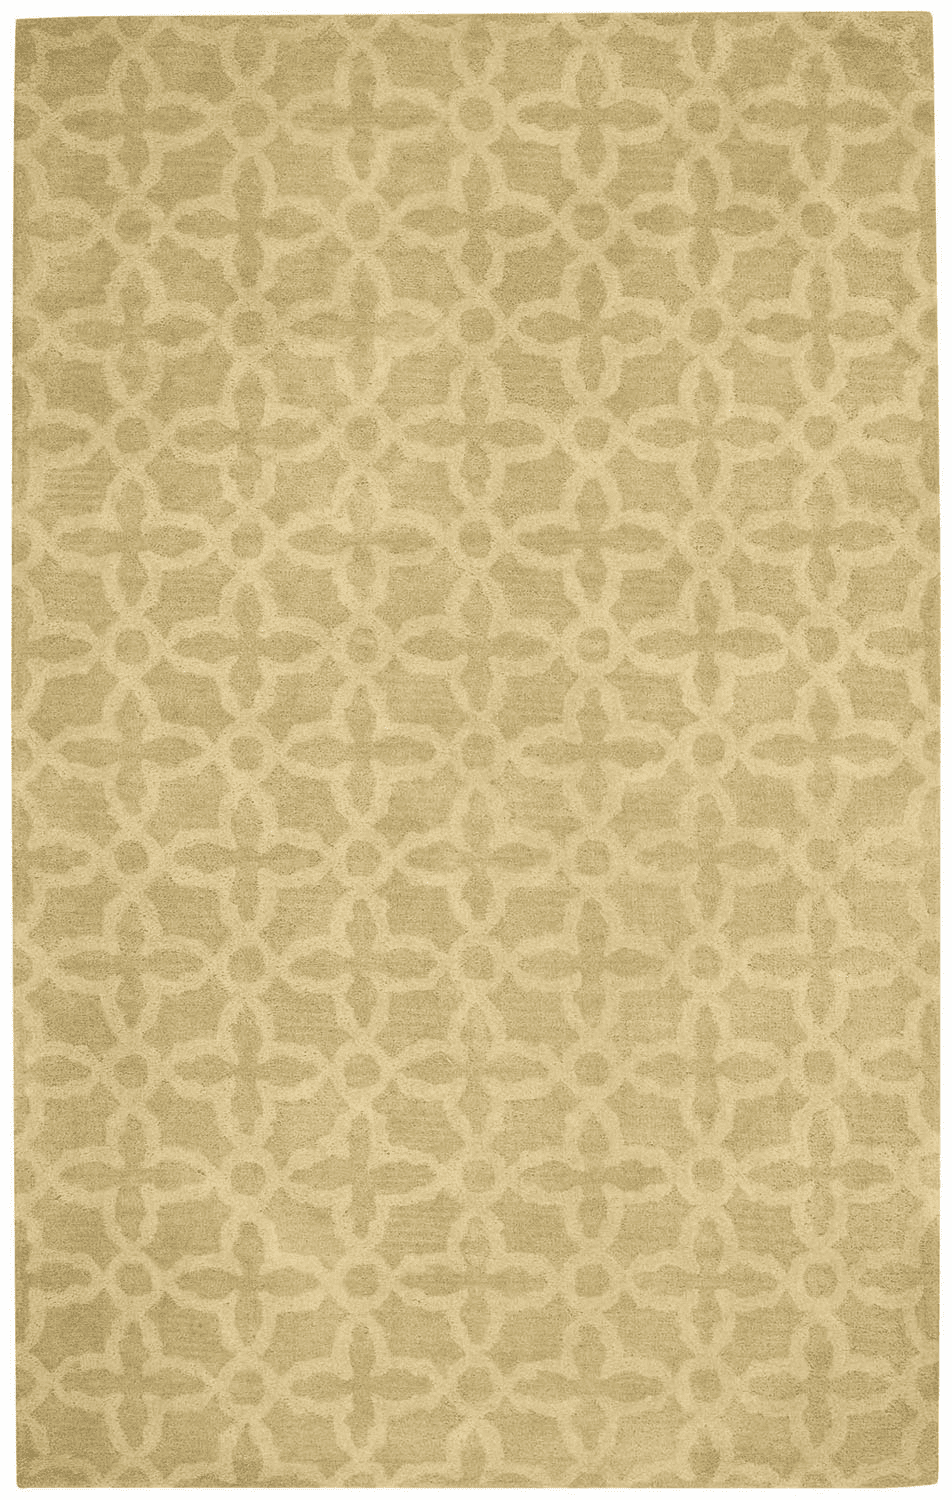 Hand Tufted Cream Rug